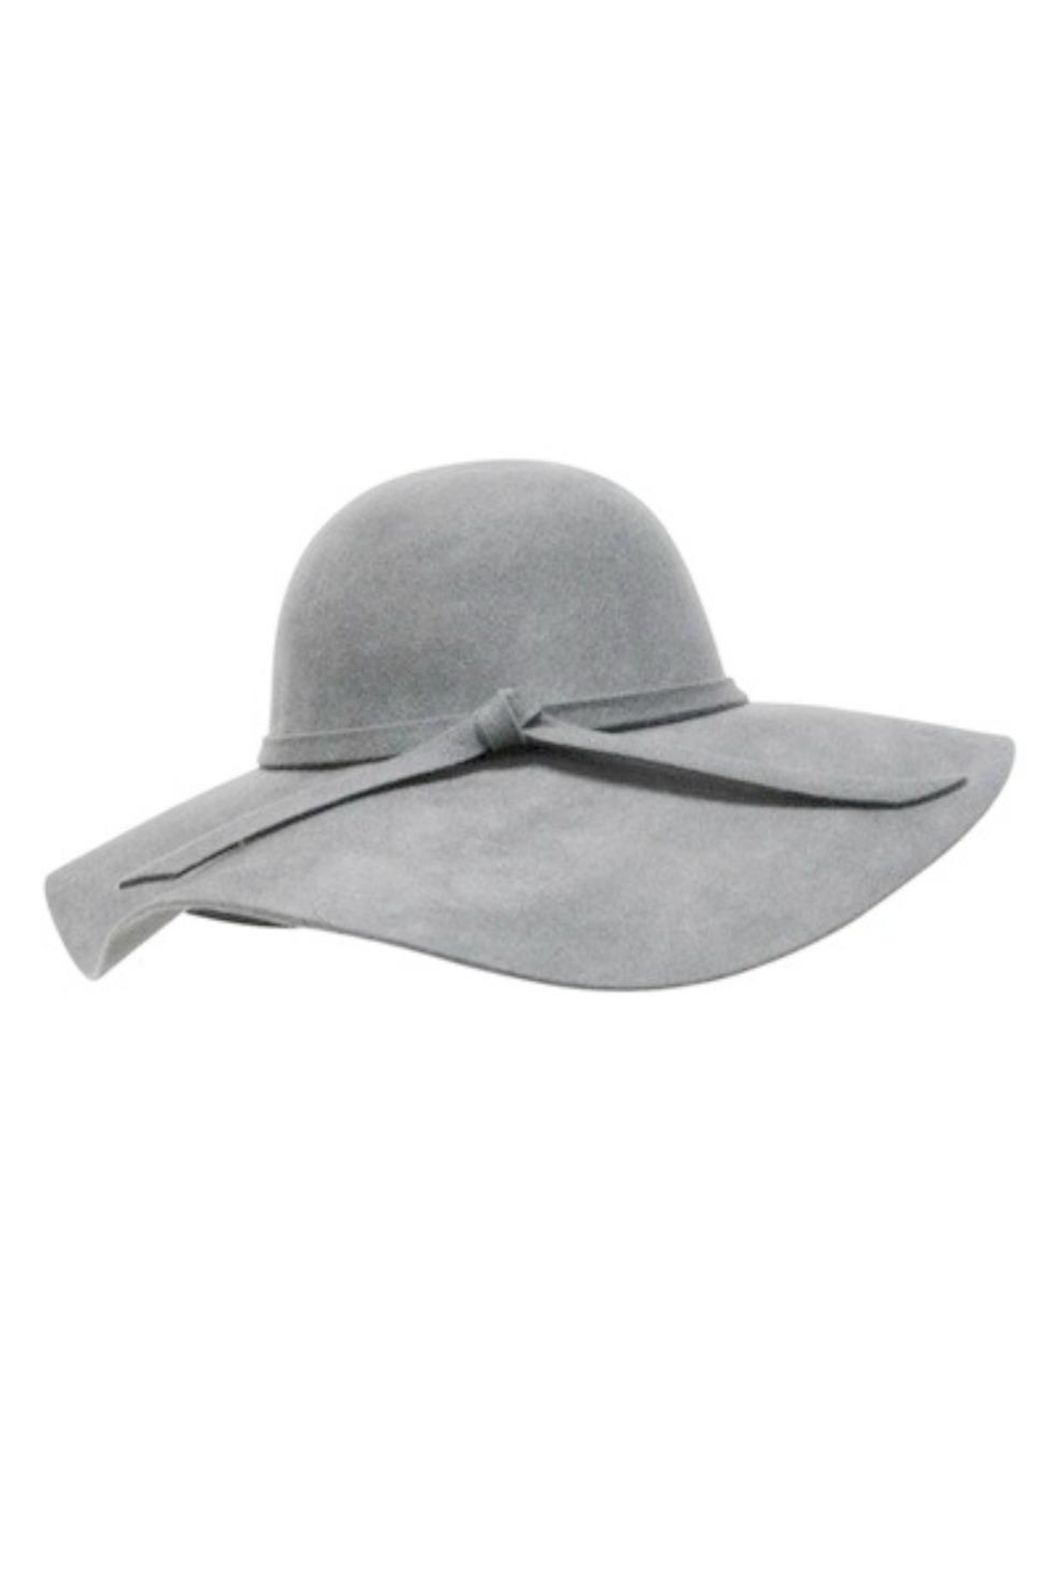 200ab1da0 Nollia Grey Floppy Hat from San Diego by BRANDED — Shoptiques